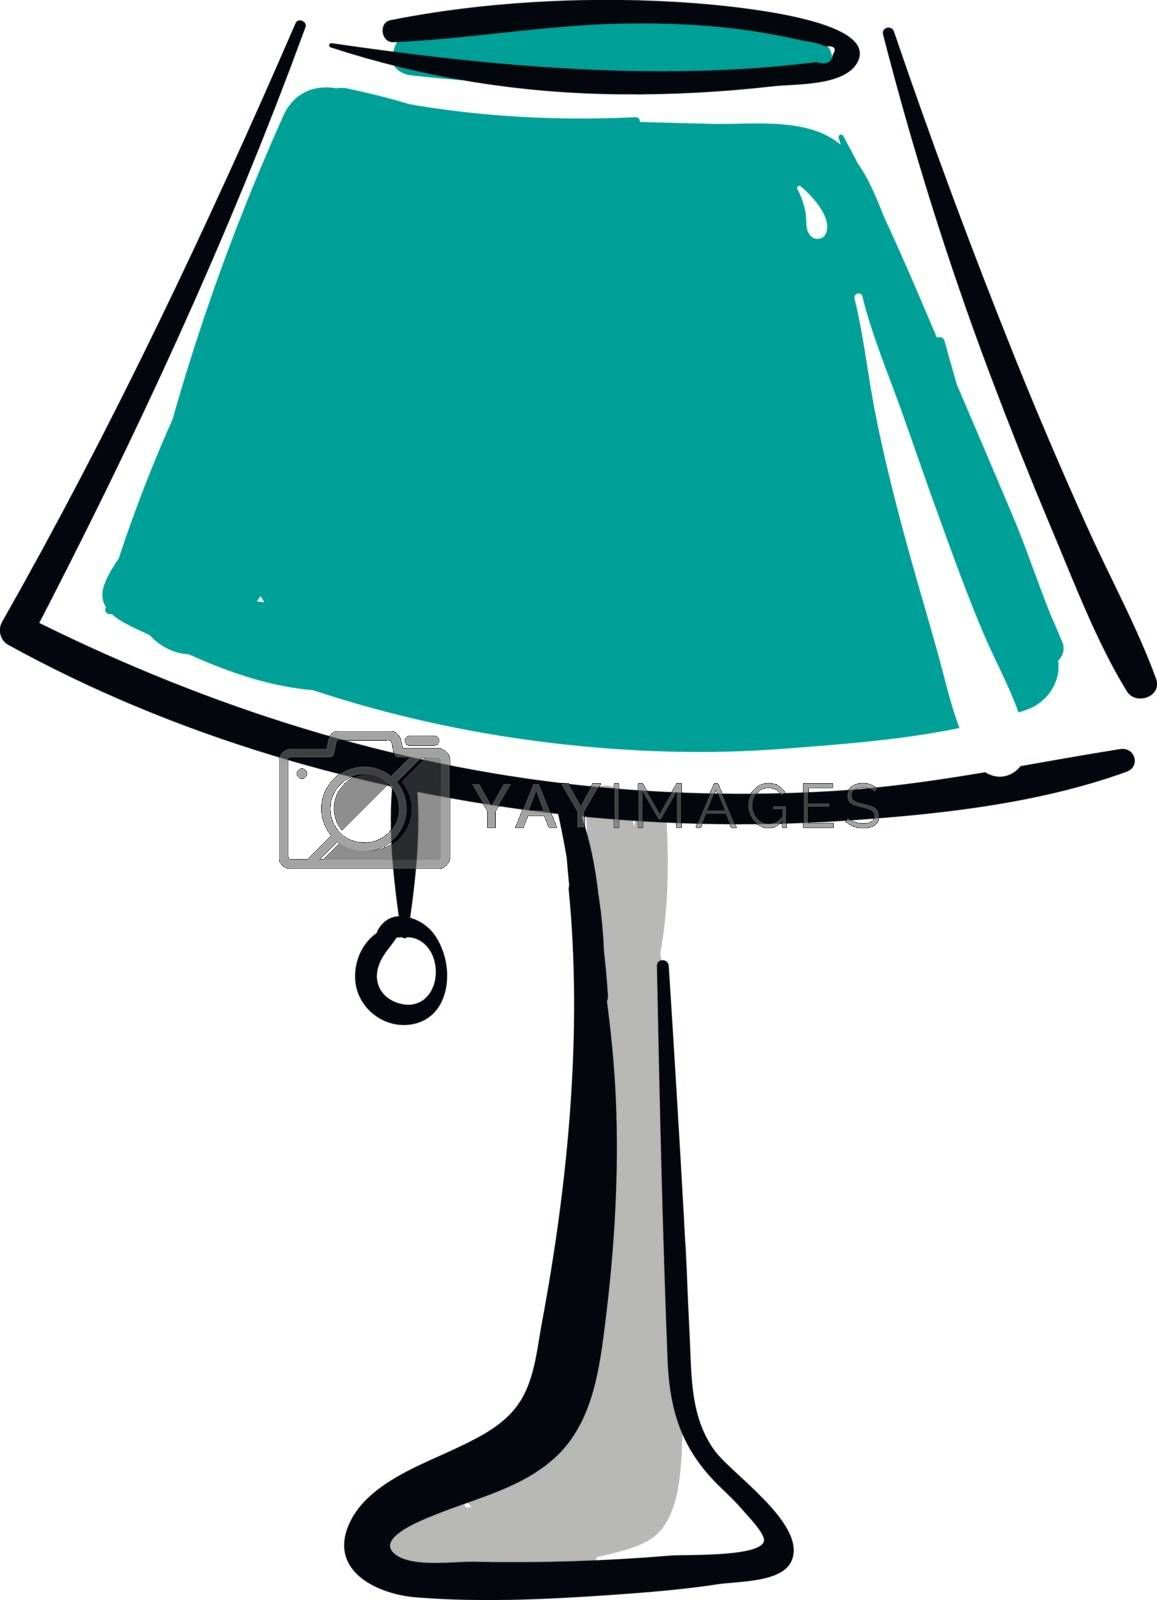 Royalty free image of Green desk lamp with grey stand illustration vector on white bac by Morphart